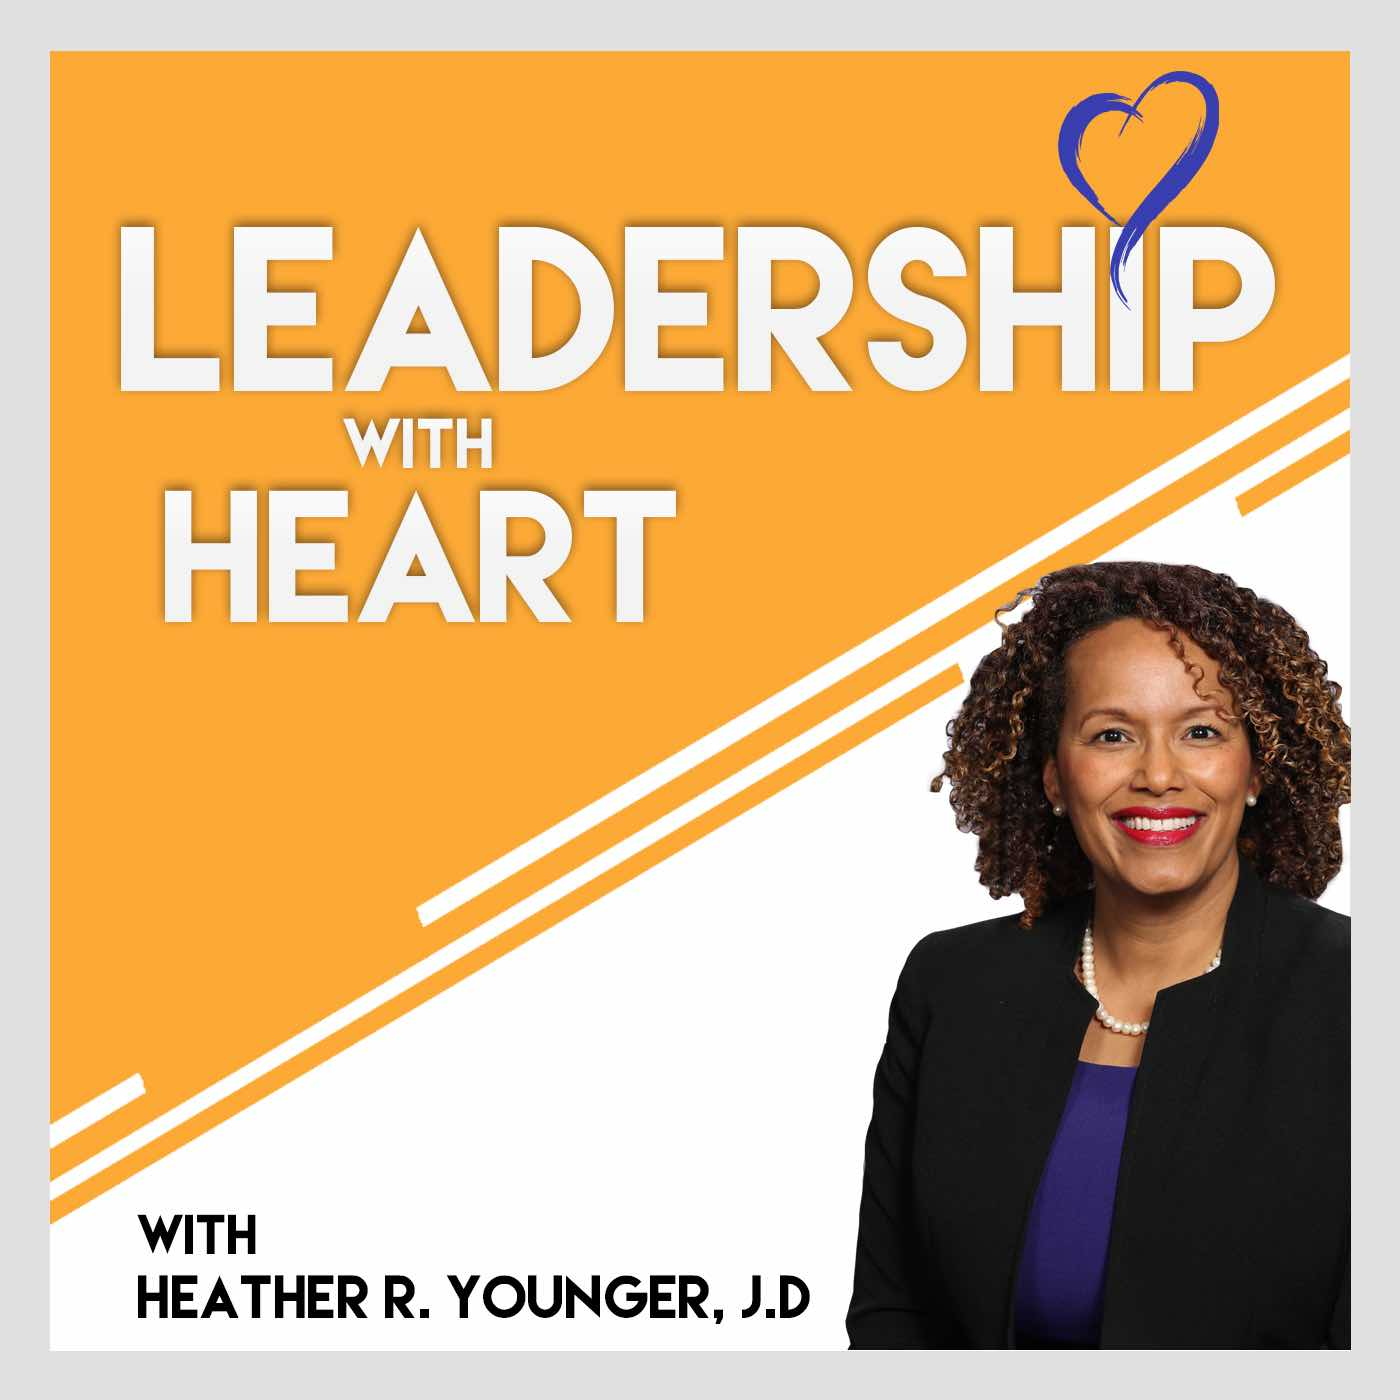 120: Leaders with Heart Don't Seek Perfection in Themselves